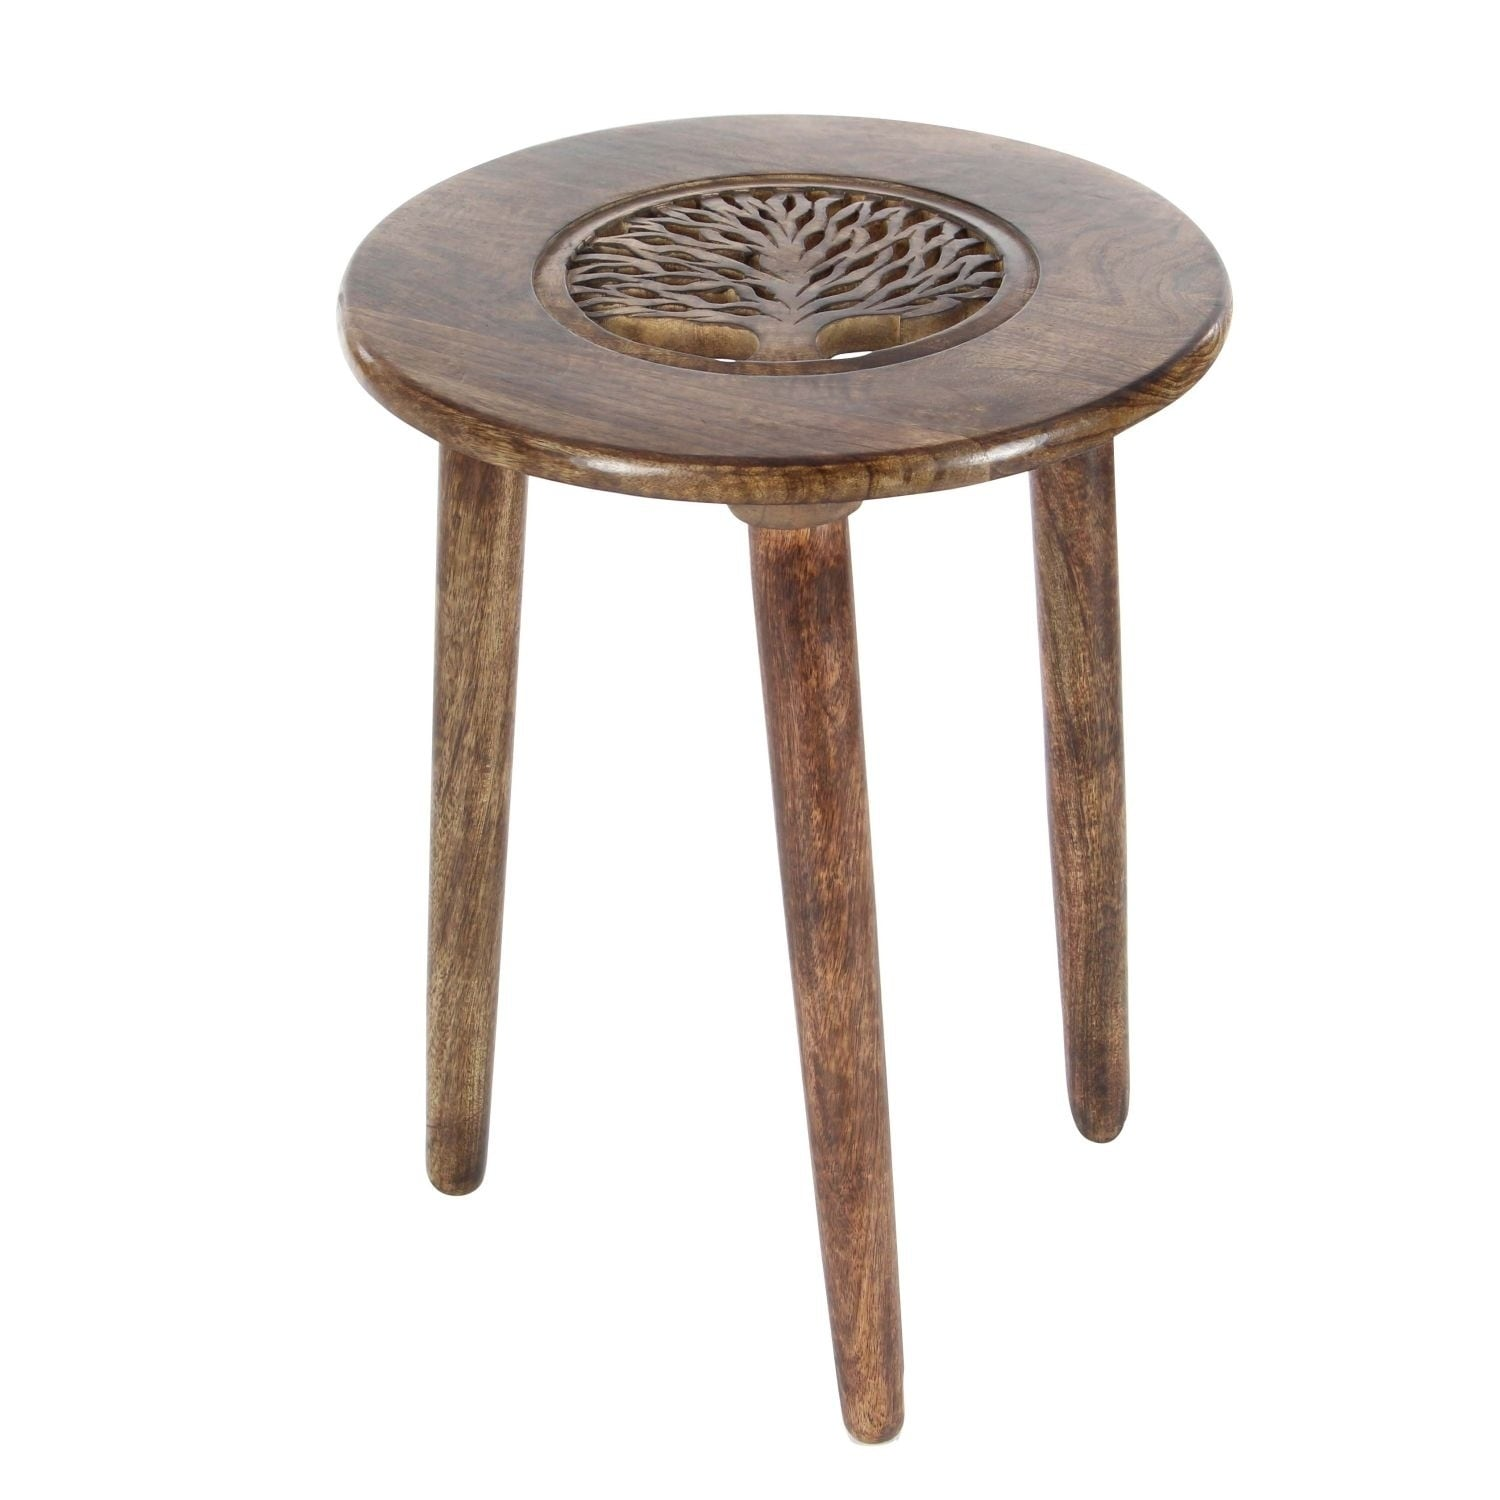 Studio 350 Wood Tripod Rd Table 17 inches wide, 22 inches high